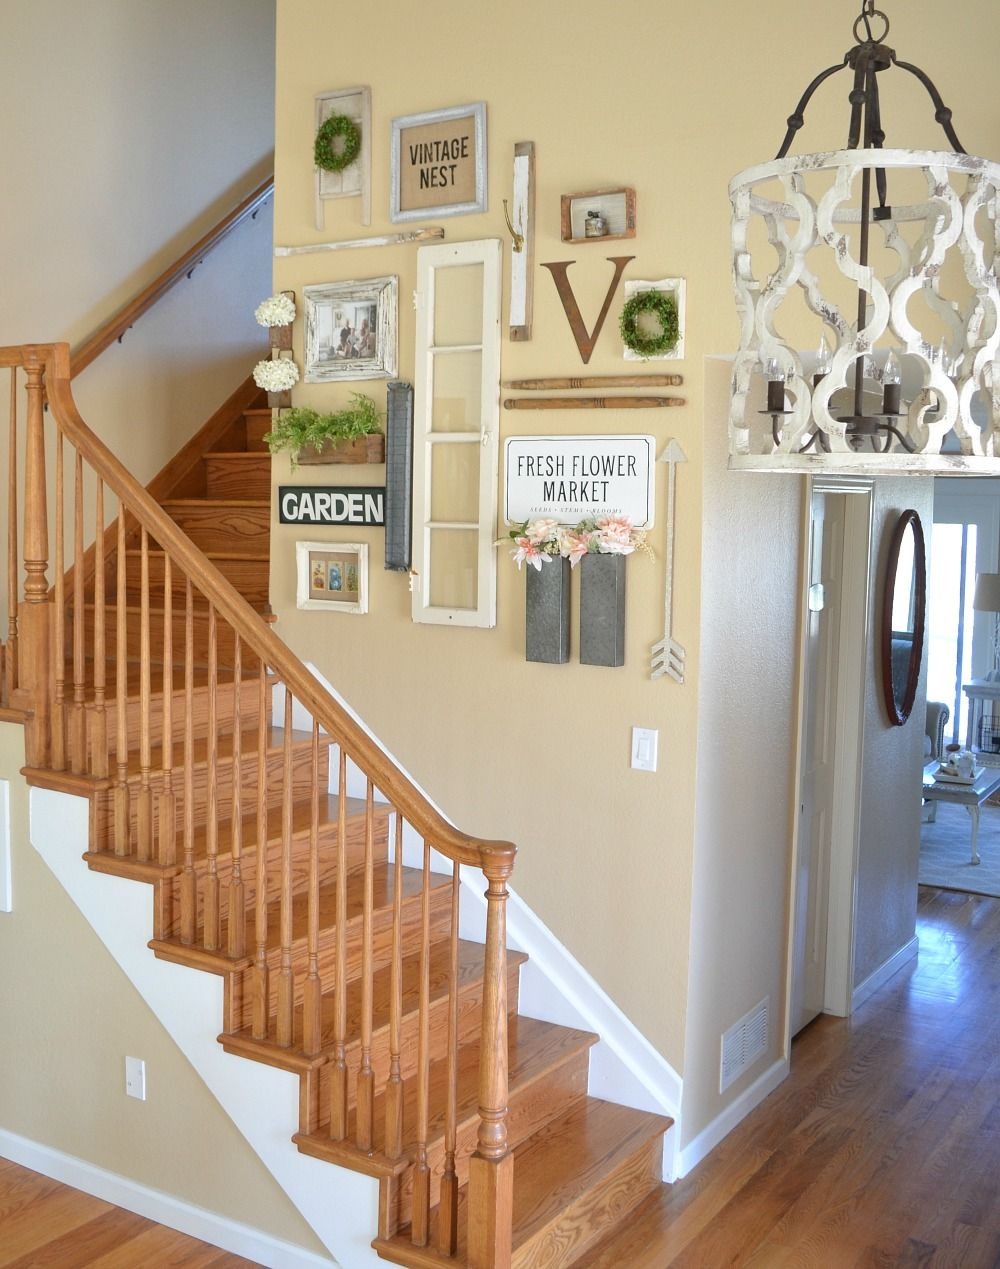 Farmhouse Style Gallery Wall for Spring. Beautiful entryway with vintage inspired gallery wall.